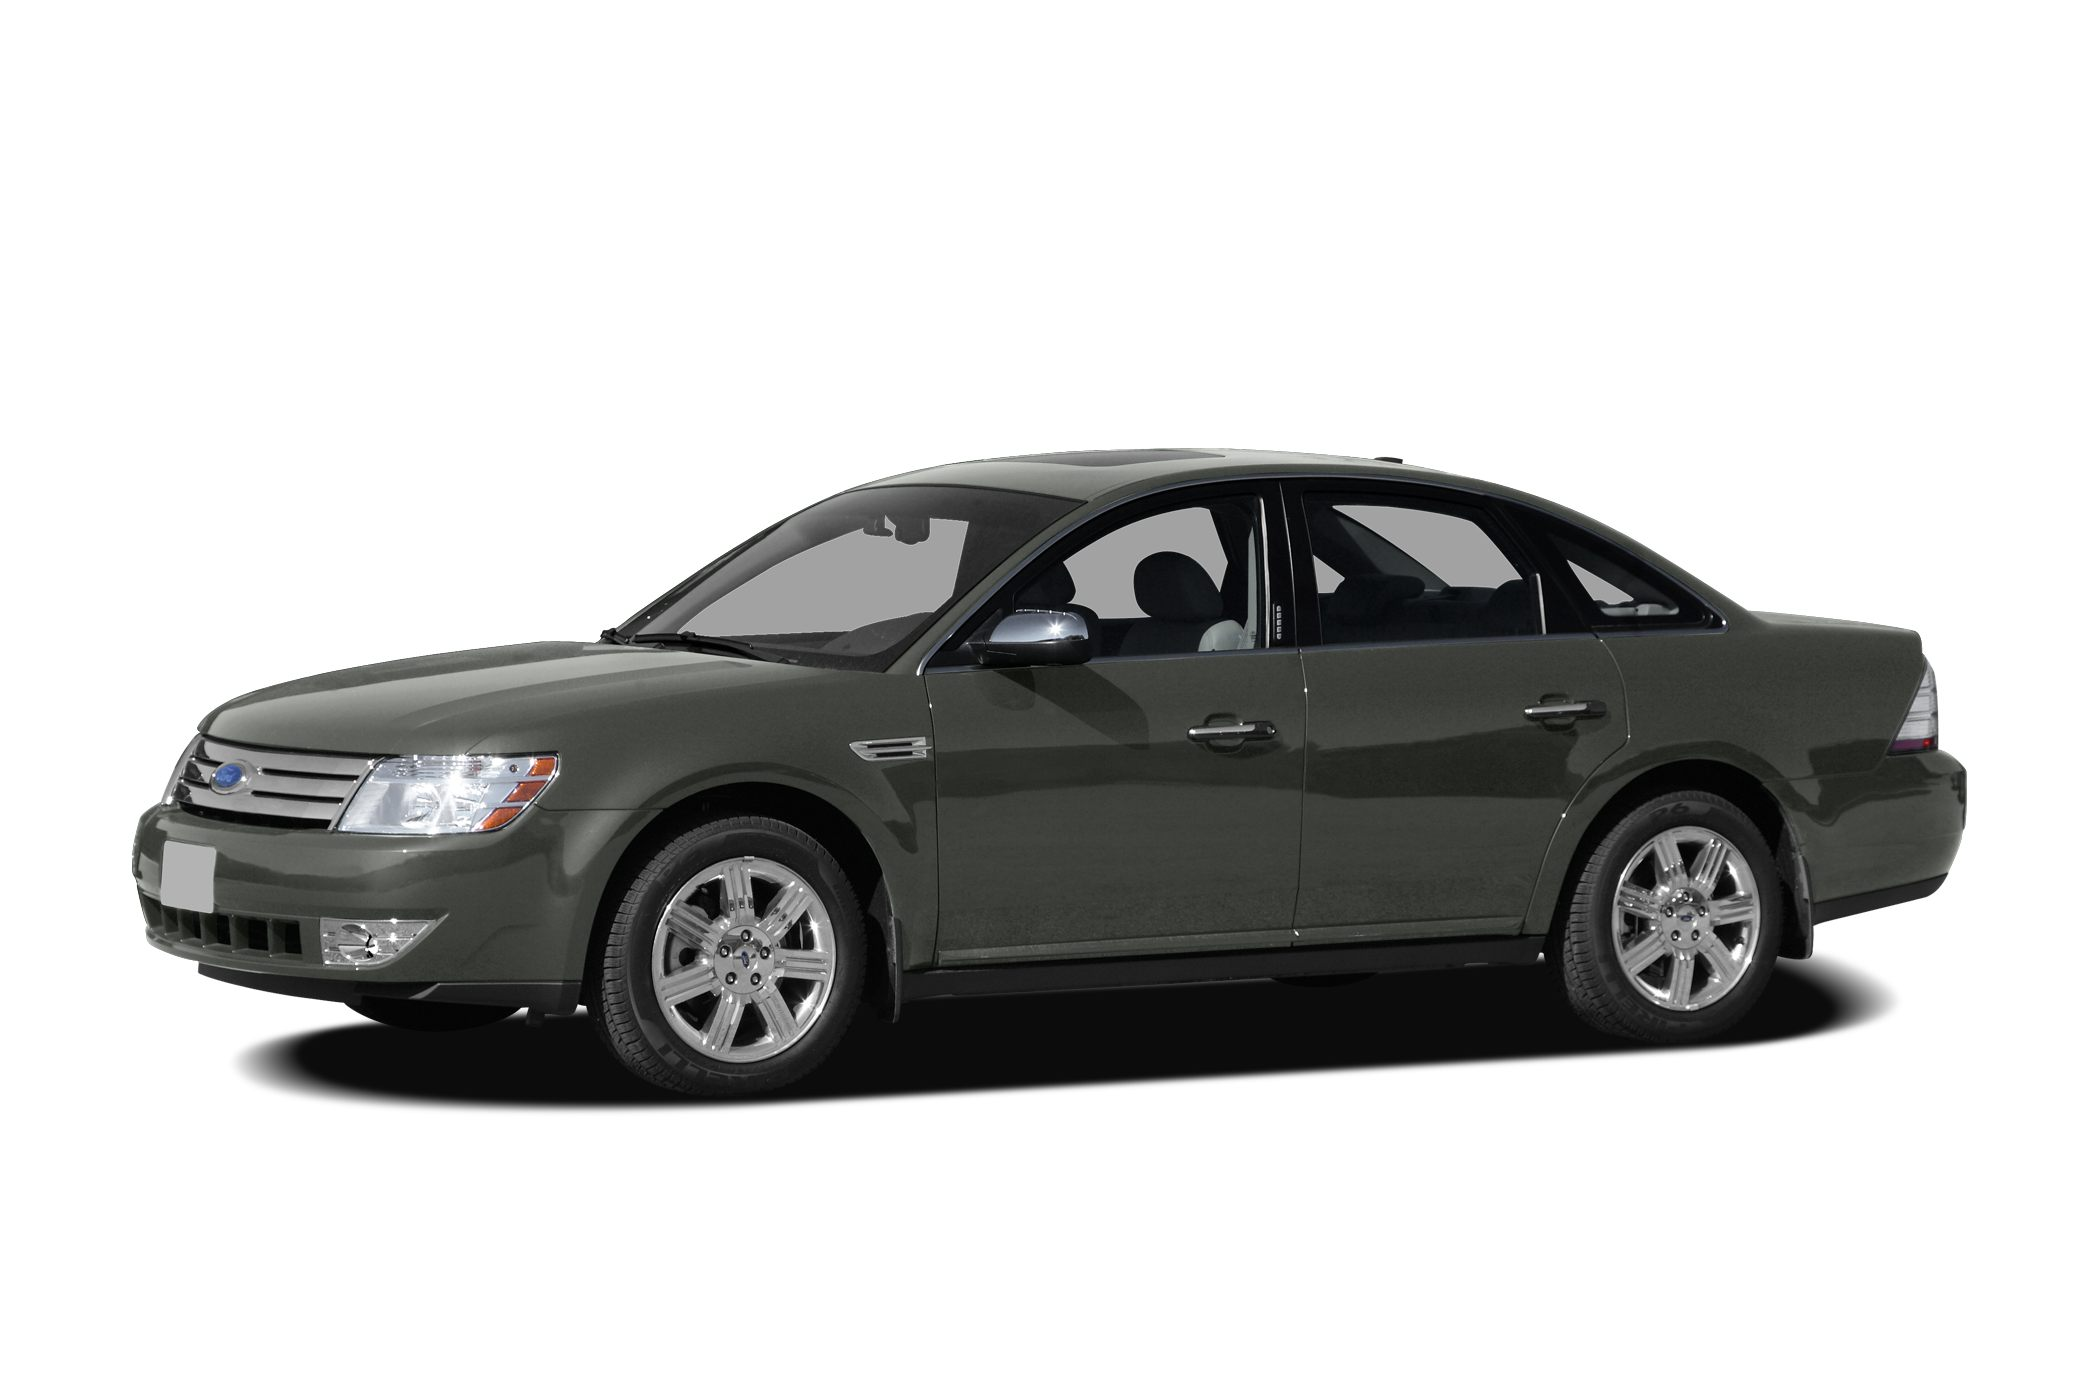 2008 Ford Taurus Limited Vehicle Detailed Recent Oil Change and Passed Dealer Inspection Yes Y